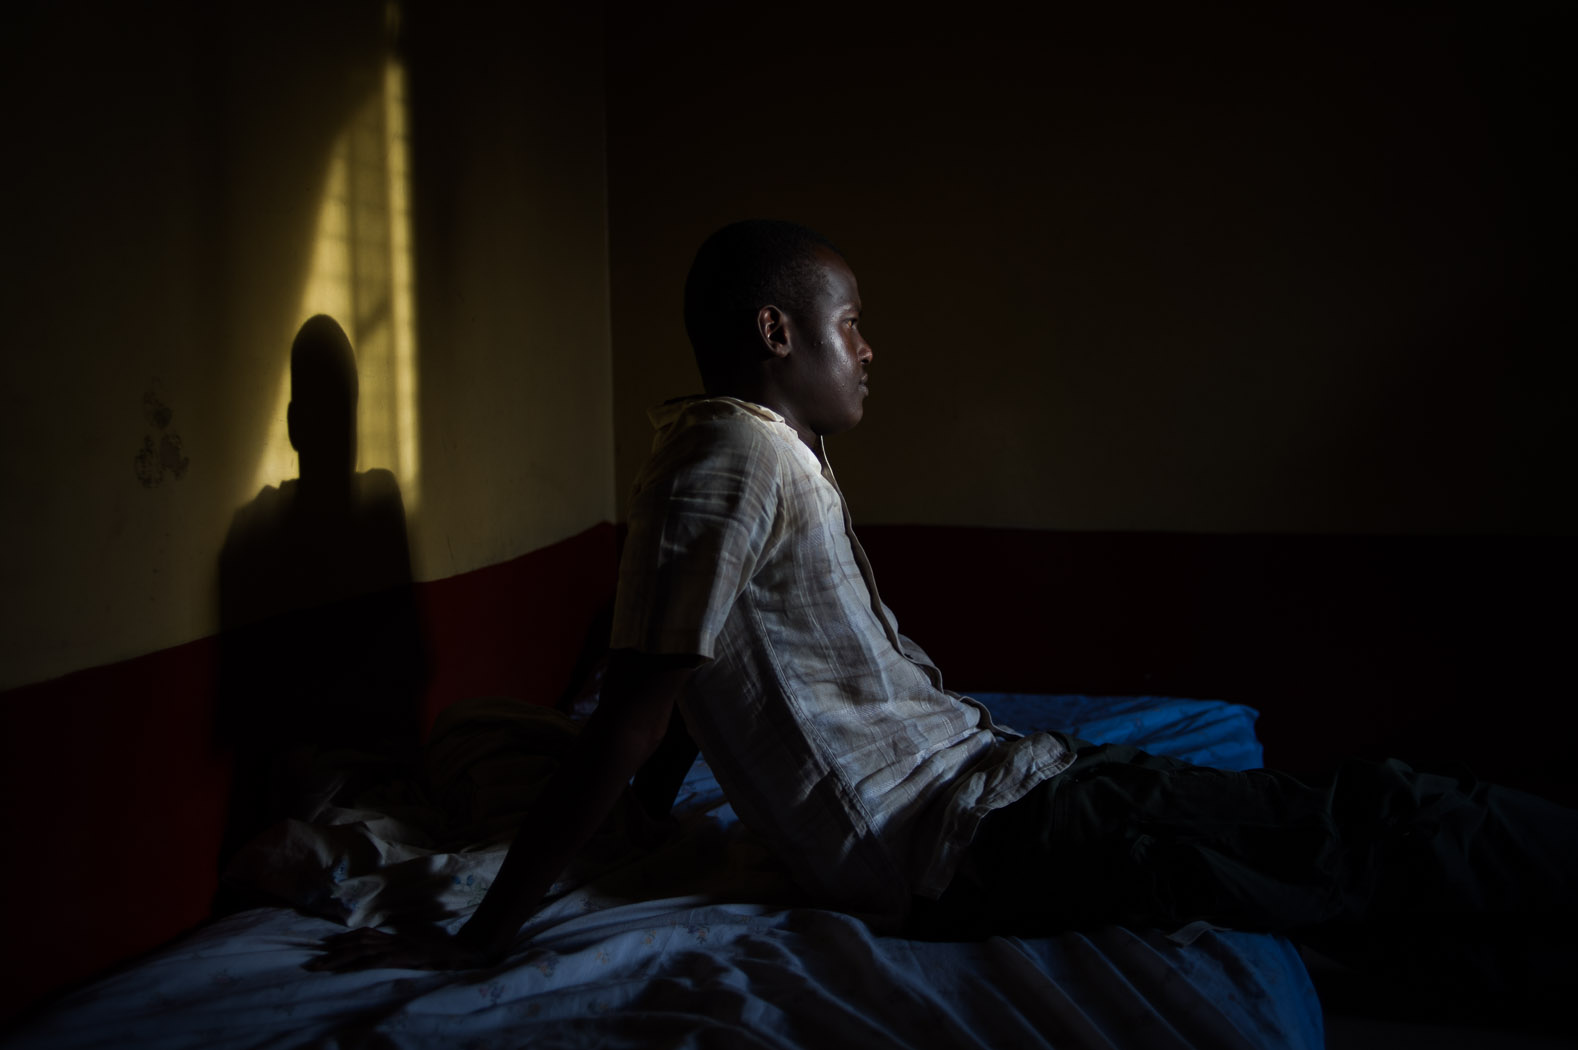 Despite the calls for peace, many feared an outbreak of violence and targeting amongst ethnic lines. This Somali man, a refugee in Kenya, lives in an area of Nairobi that has also been targeted by attacks against ethnic- and national-Somalis. Prior to the elections, he planned on leaving his home to move to Dadaab, the huge refugee complex in north-eastern Kenya, close to the Somali border.